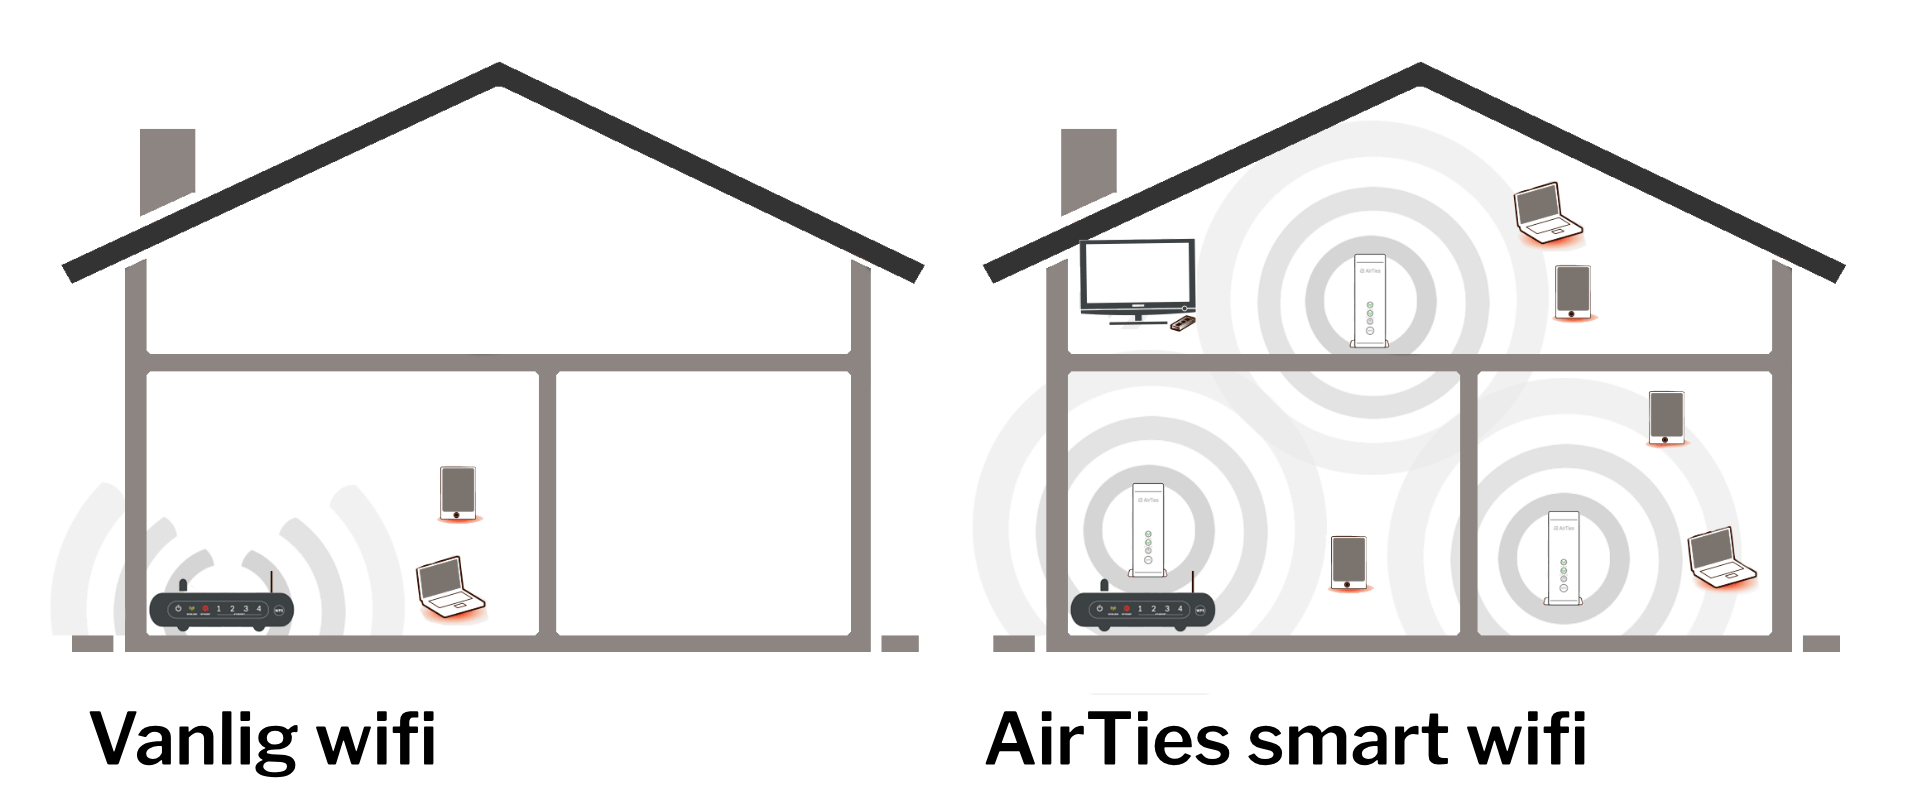 Get Full Wireless Coverage With Airties Smart Wi Fi